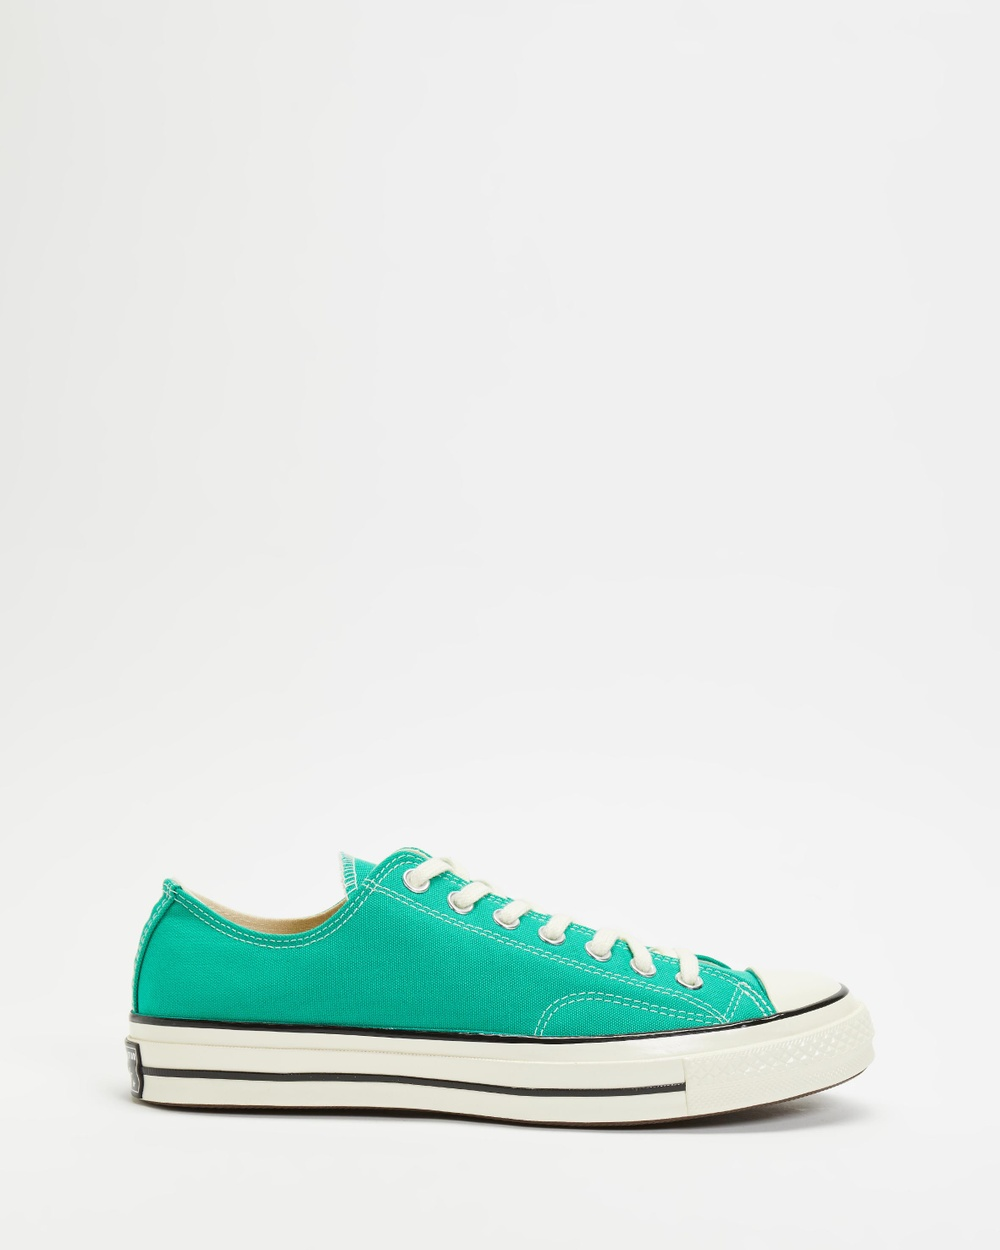 Converse Chuck Taylor All Star 70 Recycled Canvas Low Tops Unisex Top Sneakers Court Green Low-Tops